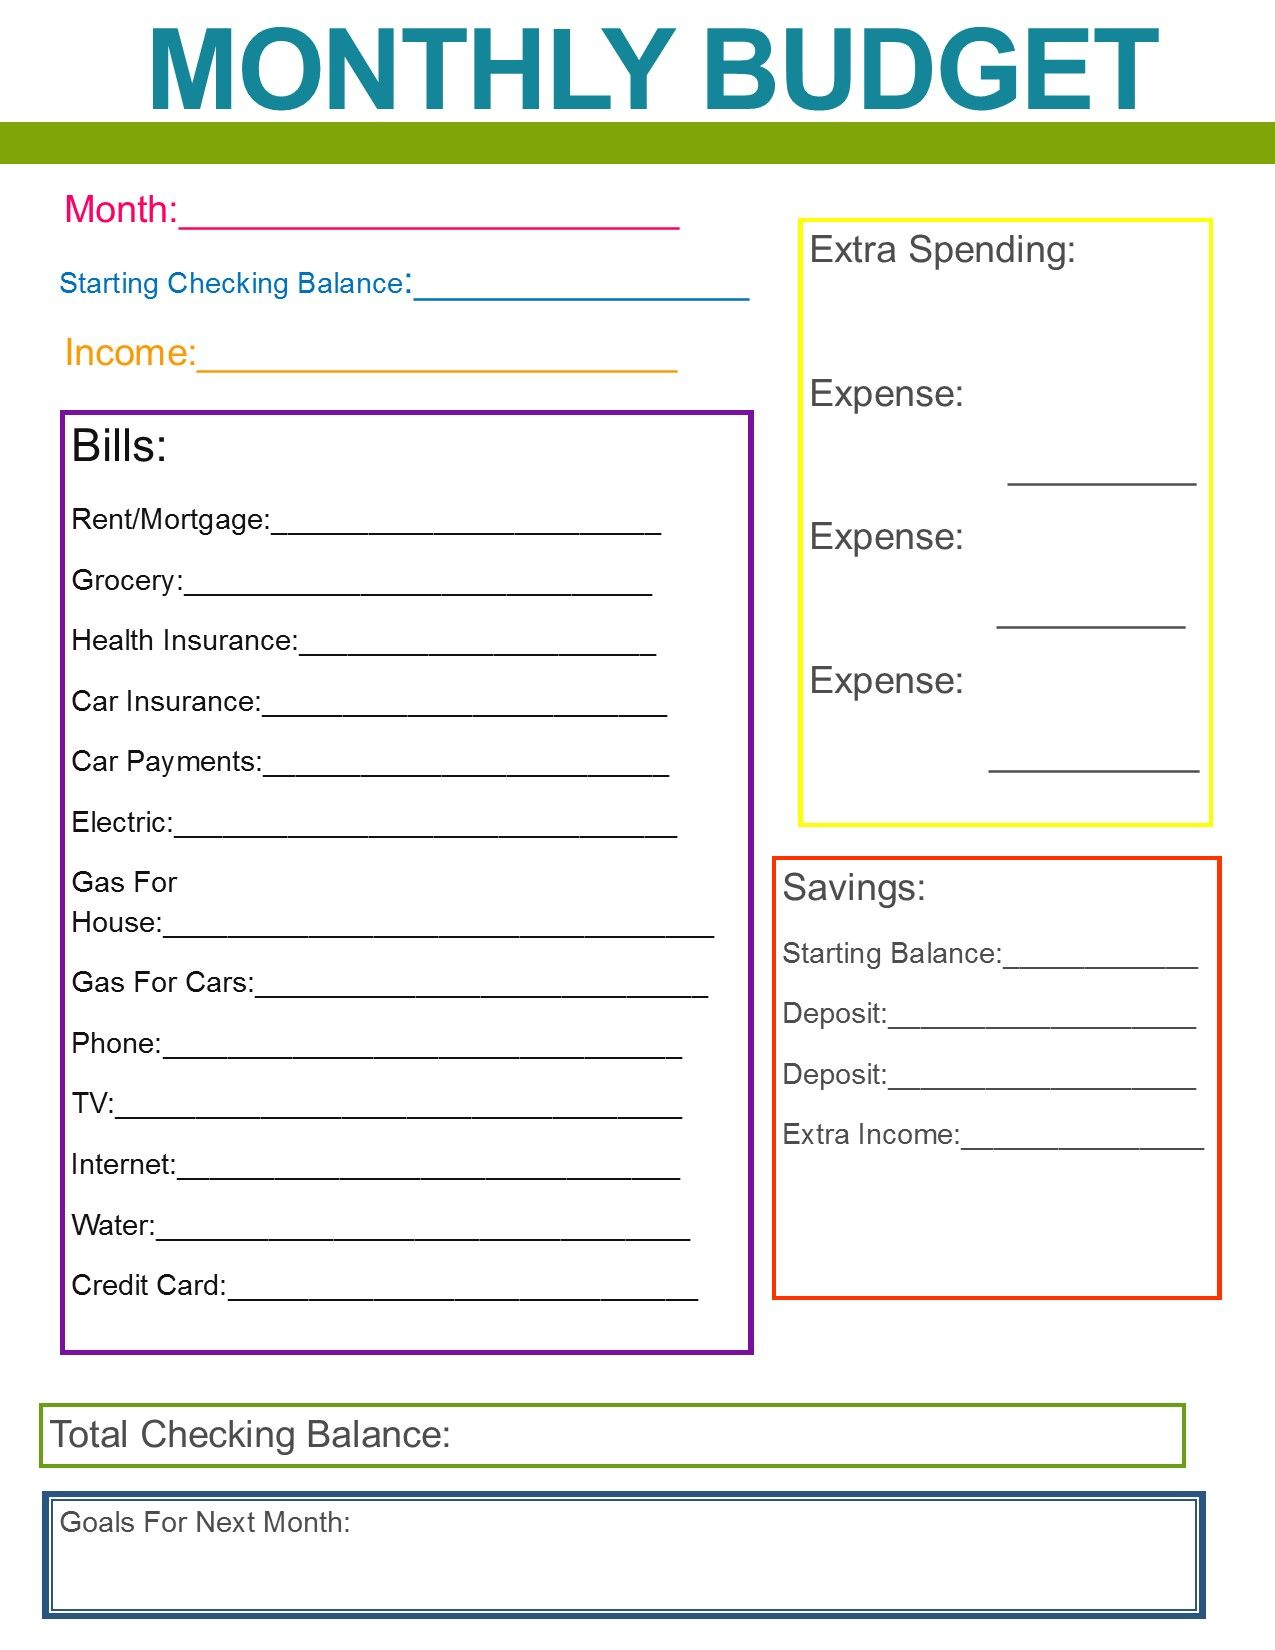 Worksheets Printable Monthly Household Budget Worksheet monthly family budget budgeting organisations and organizing great habit to start for the new year